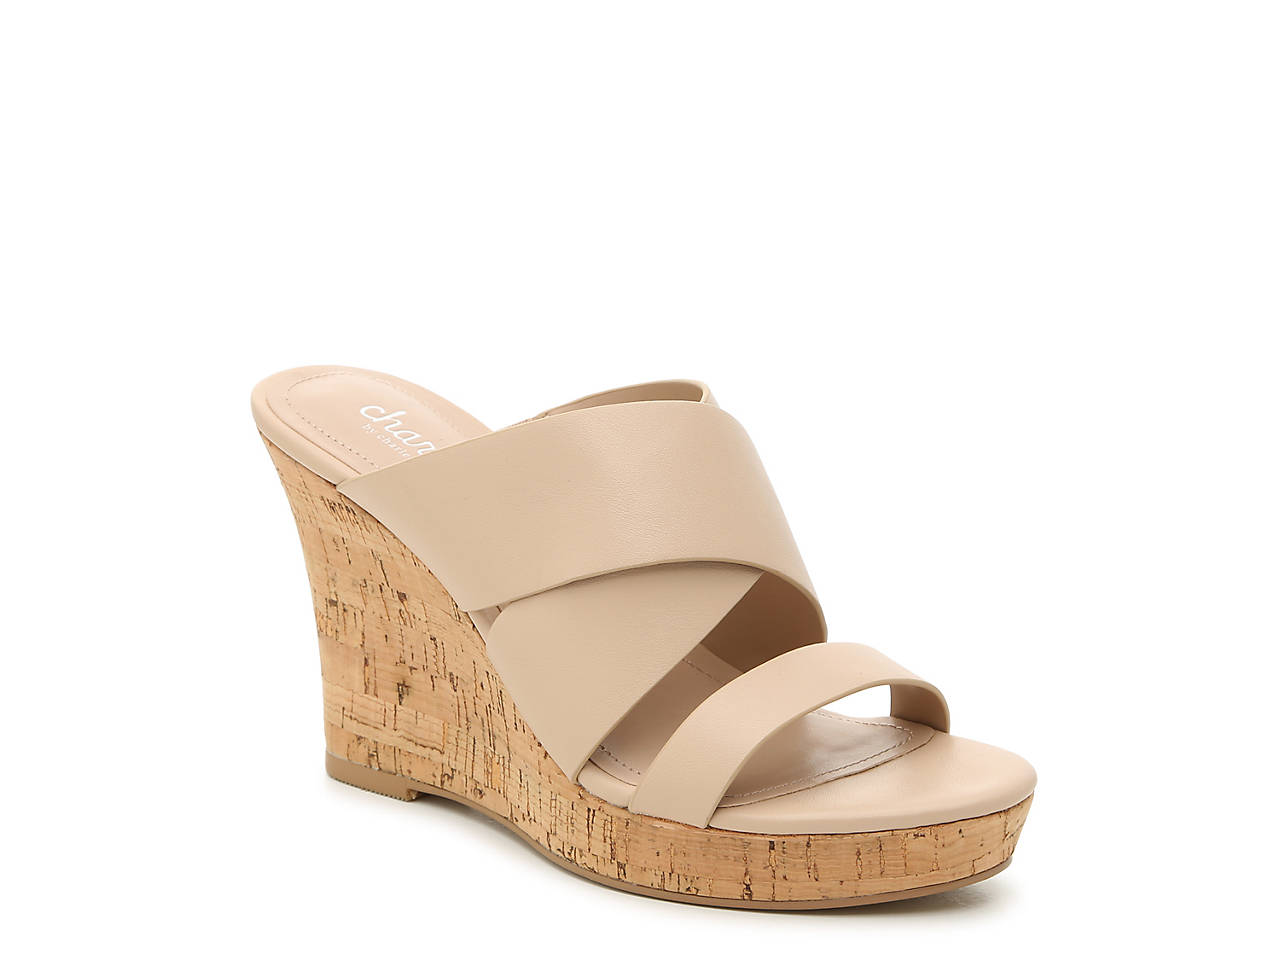 b70b9445c Charles by Charles David Leslie Wedge Sandal Women's Shoes | DSW